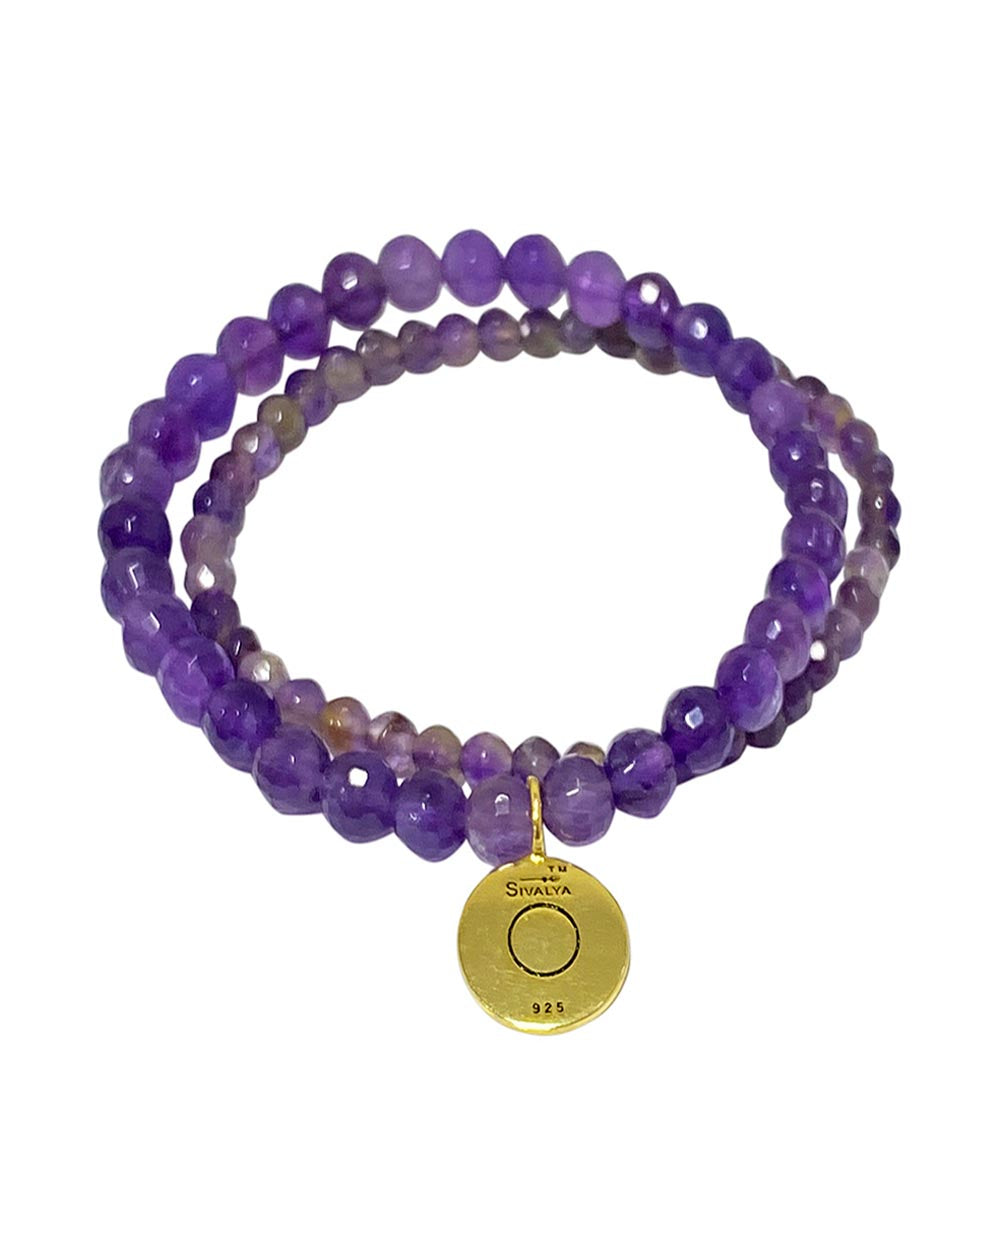 Ether Elements Bracelet Set with Amethyst in Gold Vermeil